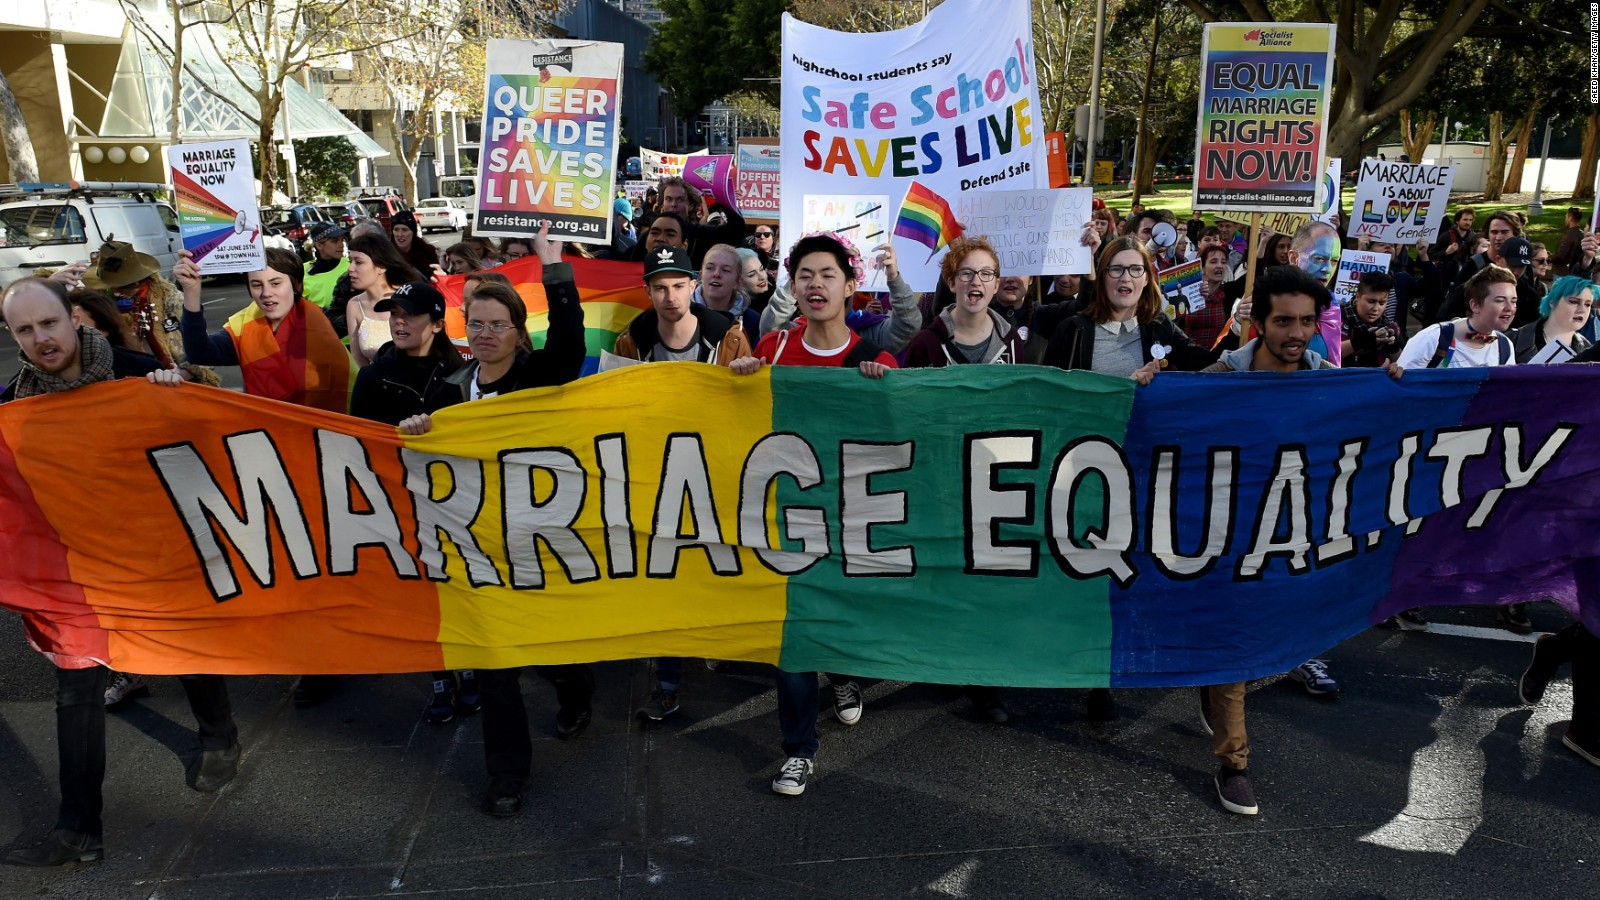 Equality for married same sex couples